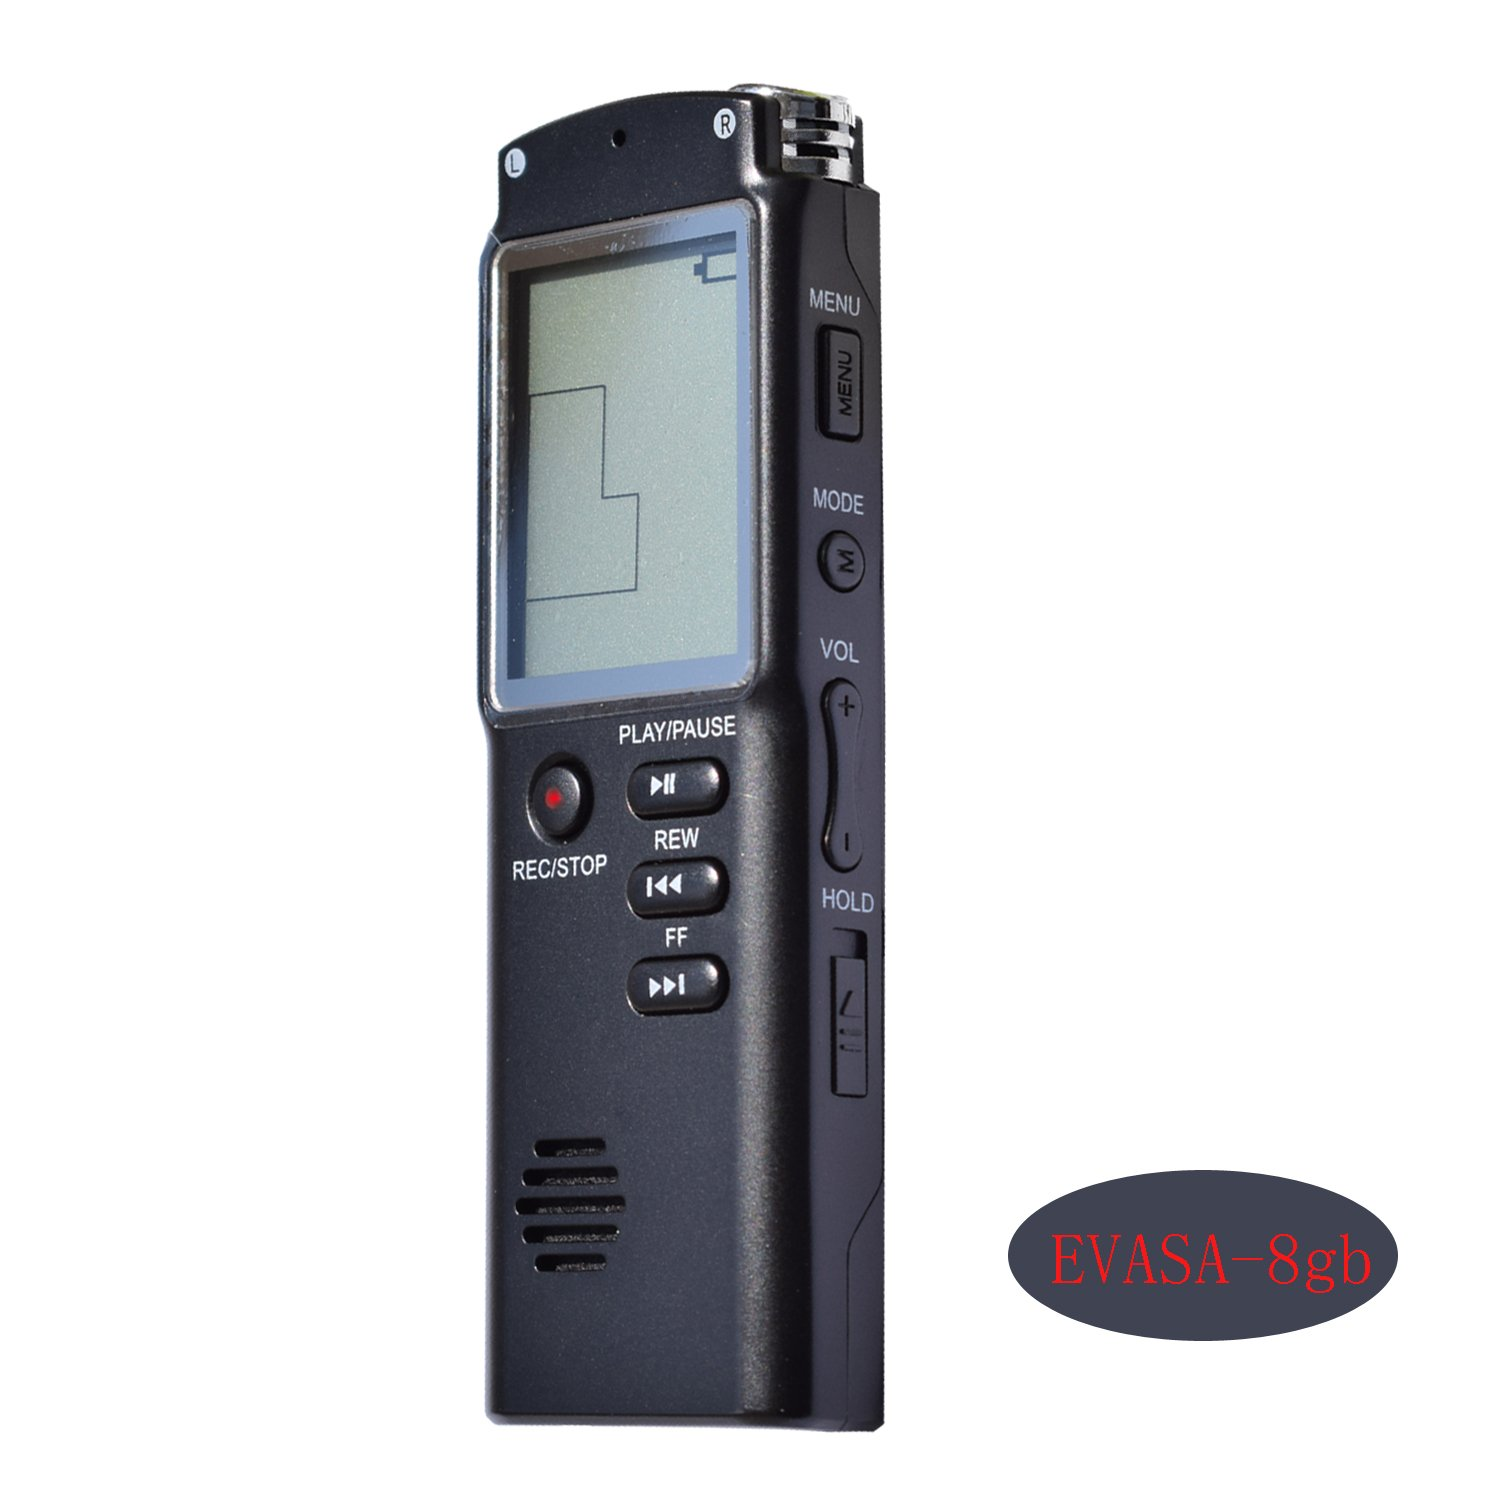 Digital Voice Recorder by EVASA,8GB Audio Voice Recorder,Hi-Fi Mp3 Player,HD Dual-Mic Recorder,Voice Activated,Noise Cancelling Recorder(Black)